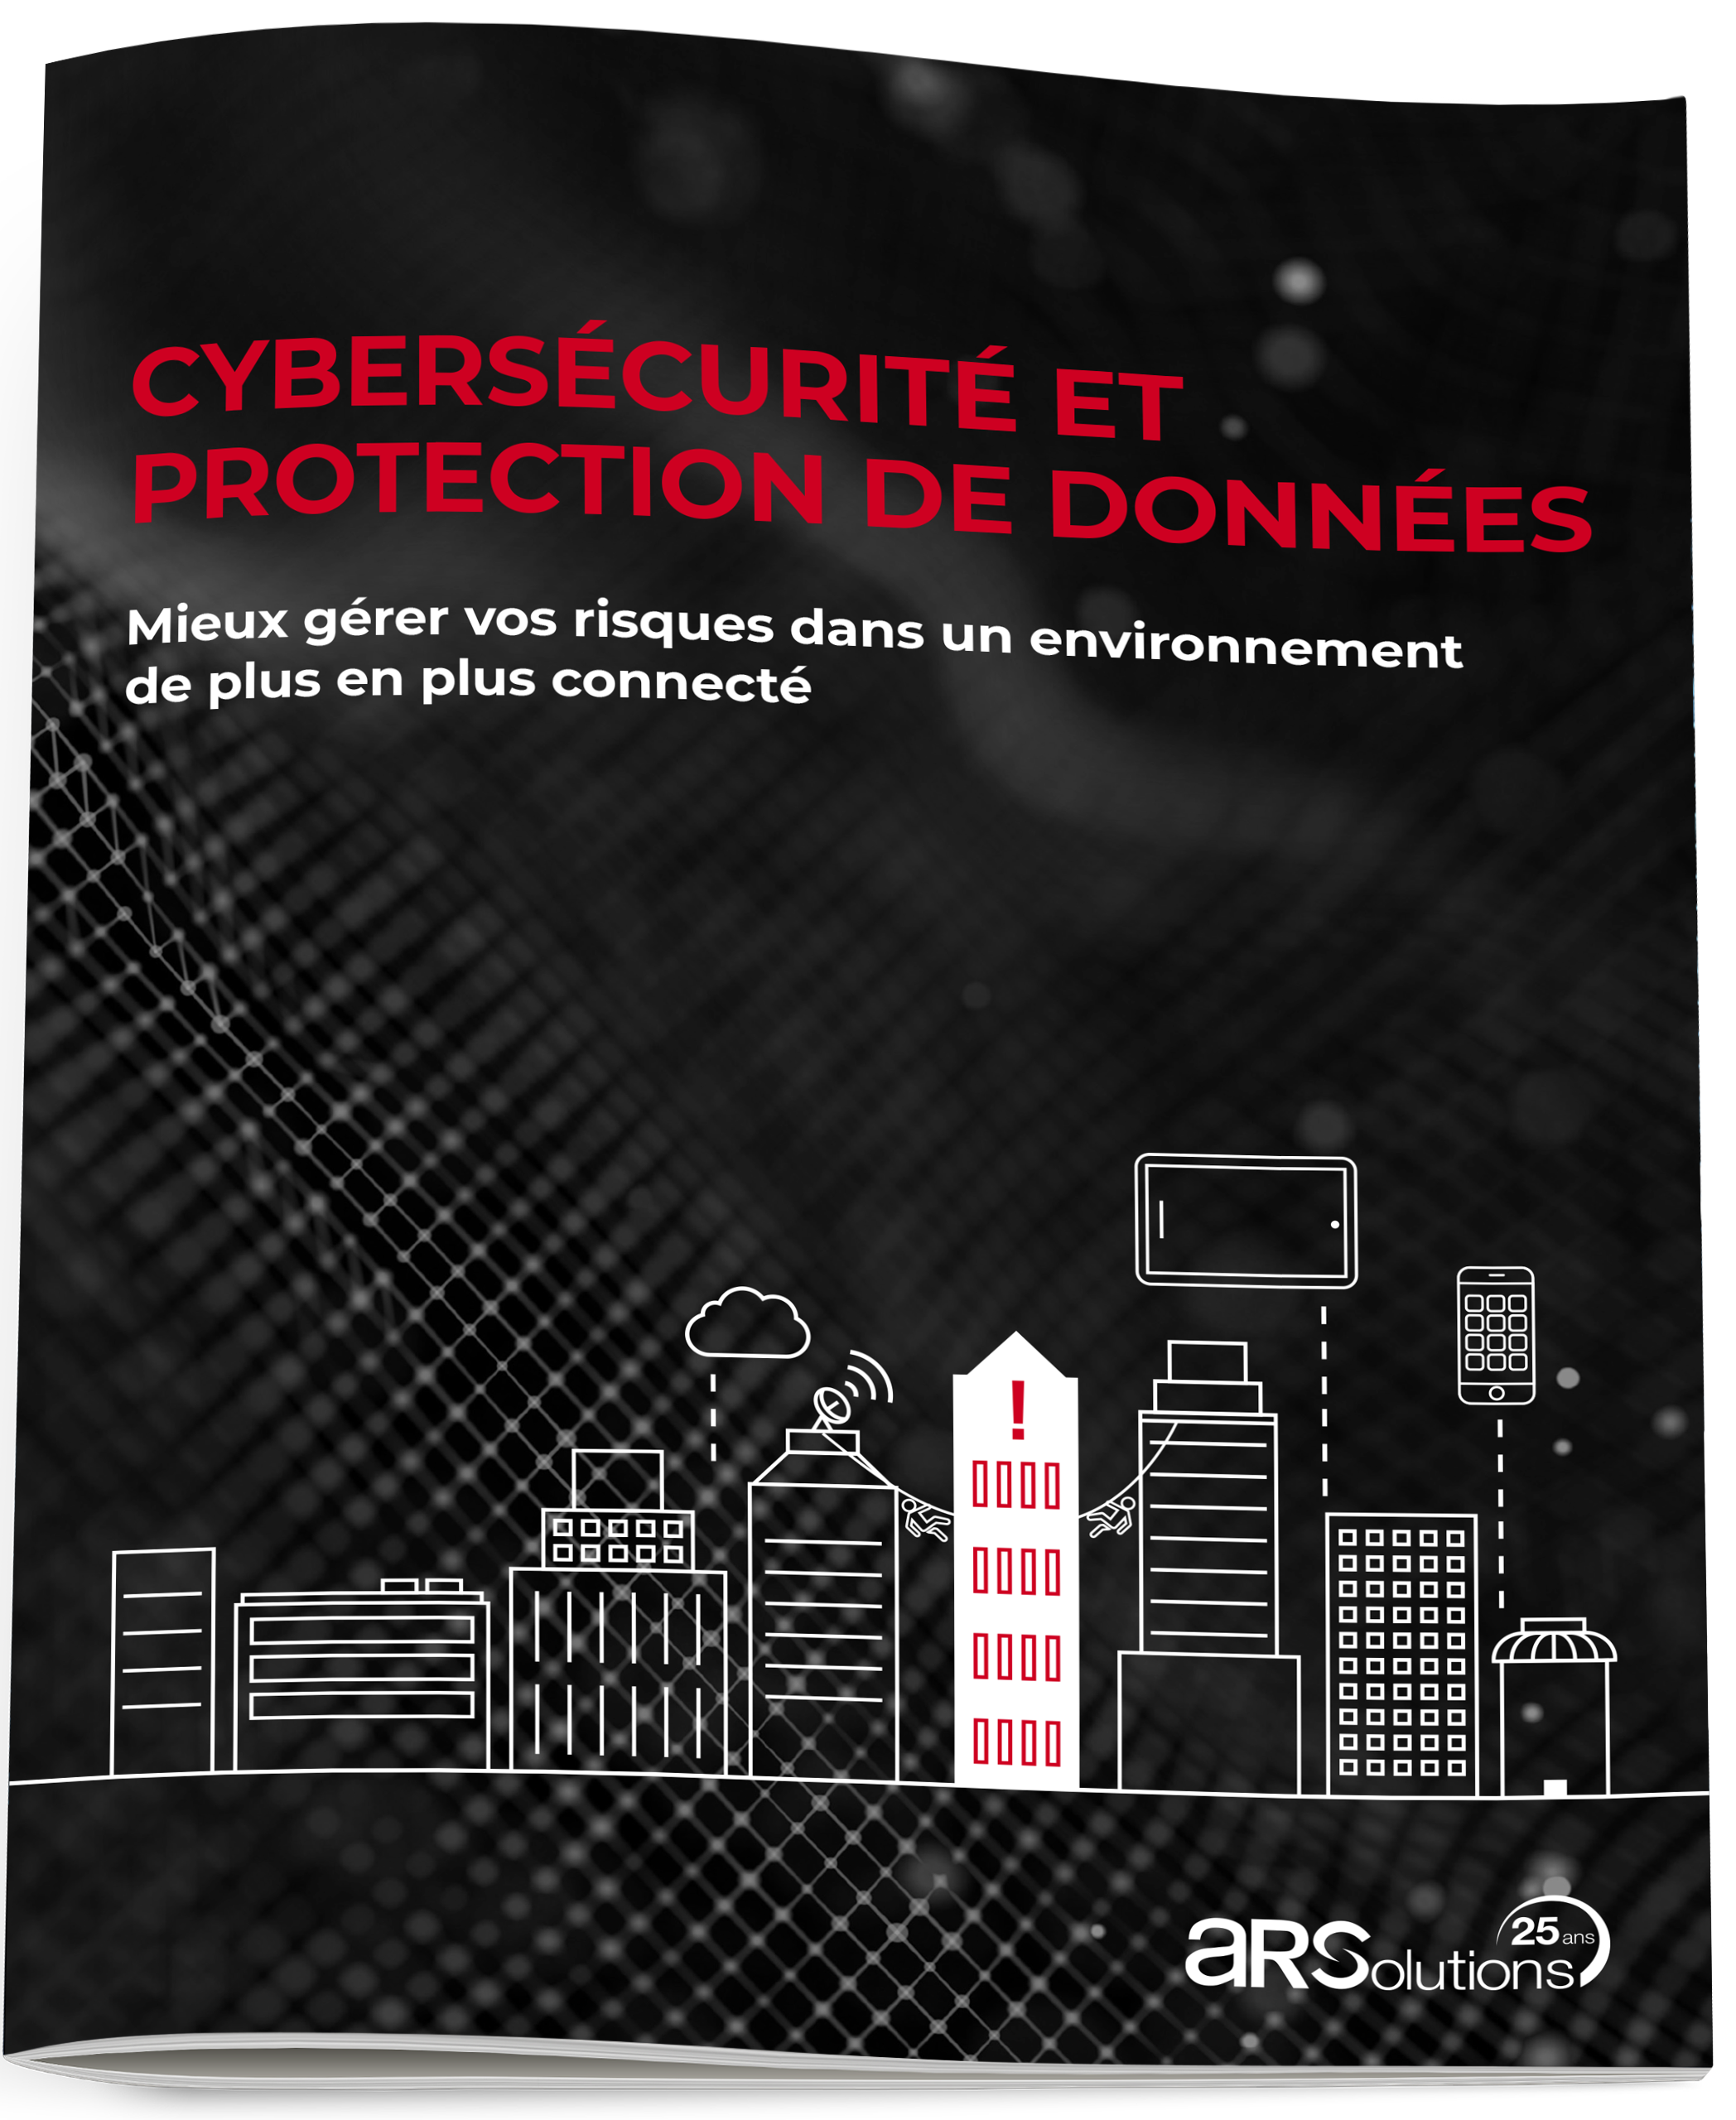 Cover-rapport-cybersecurit%C3%A9_ARS-Solutions-1